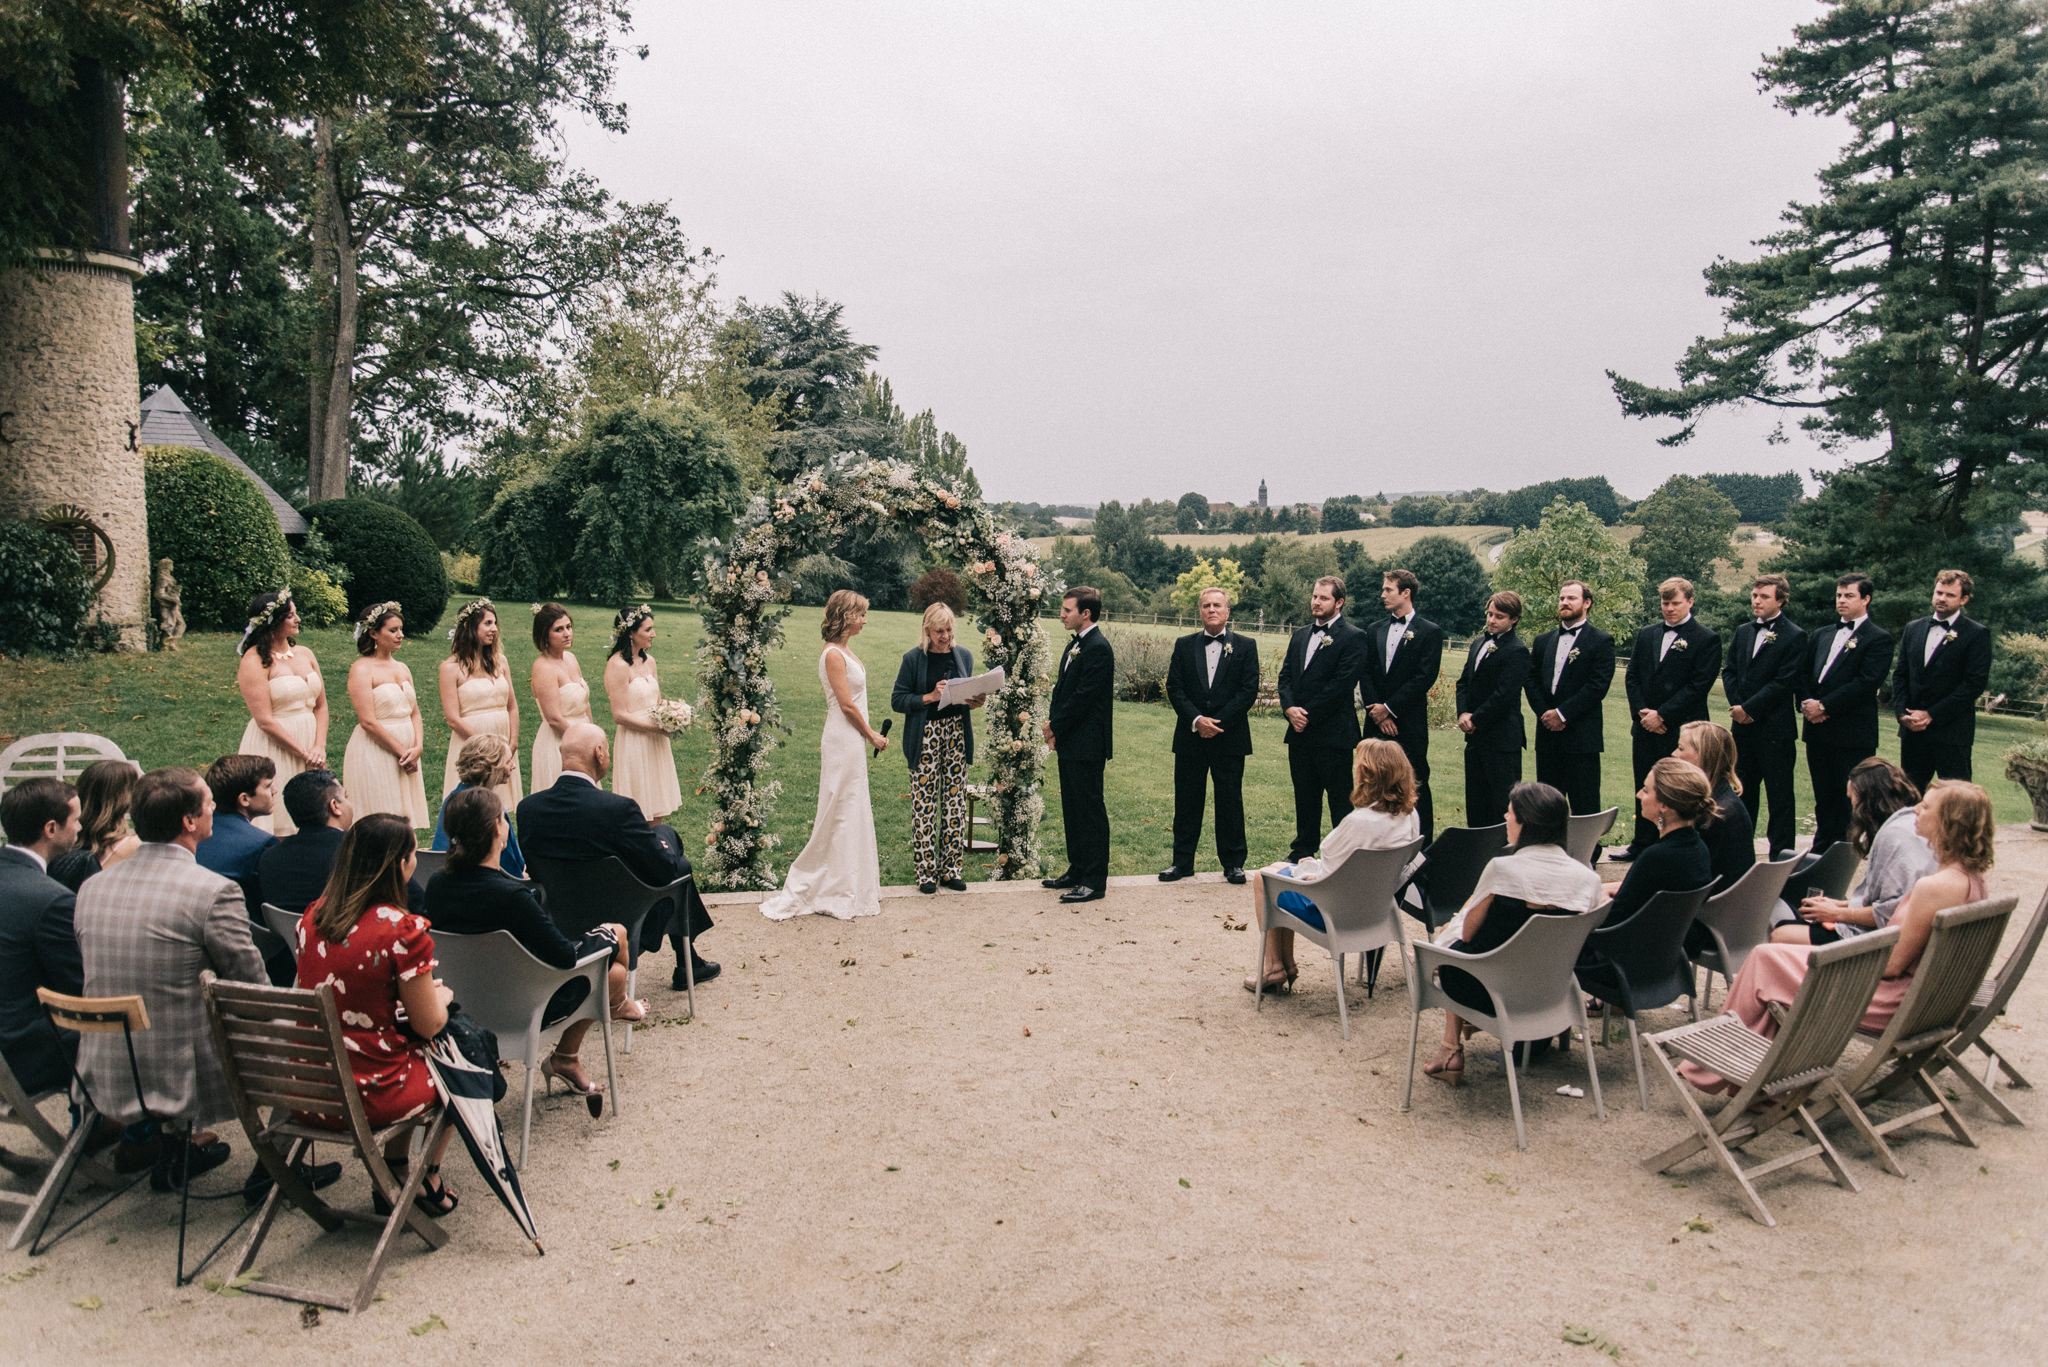 photographe-mariage-paris-nantes-wedding-france-27